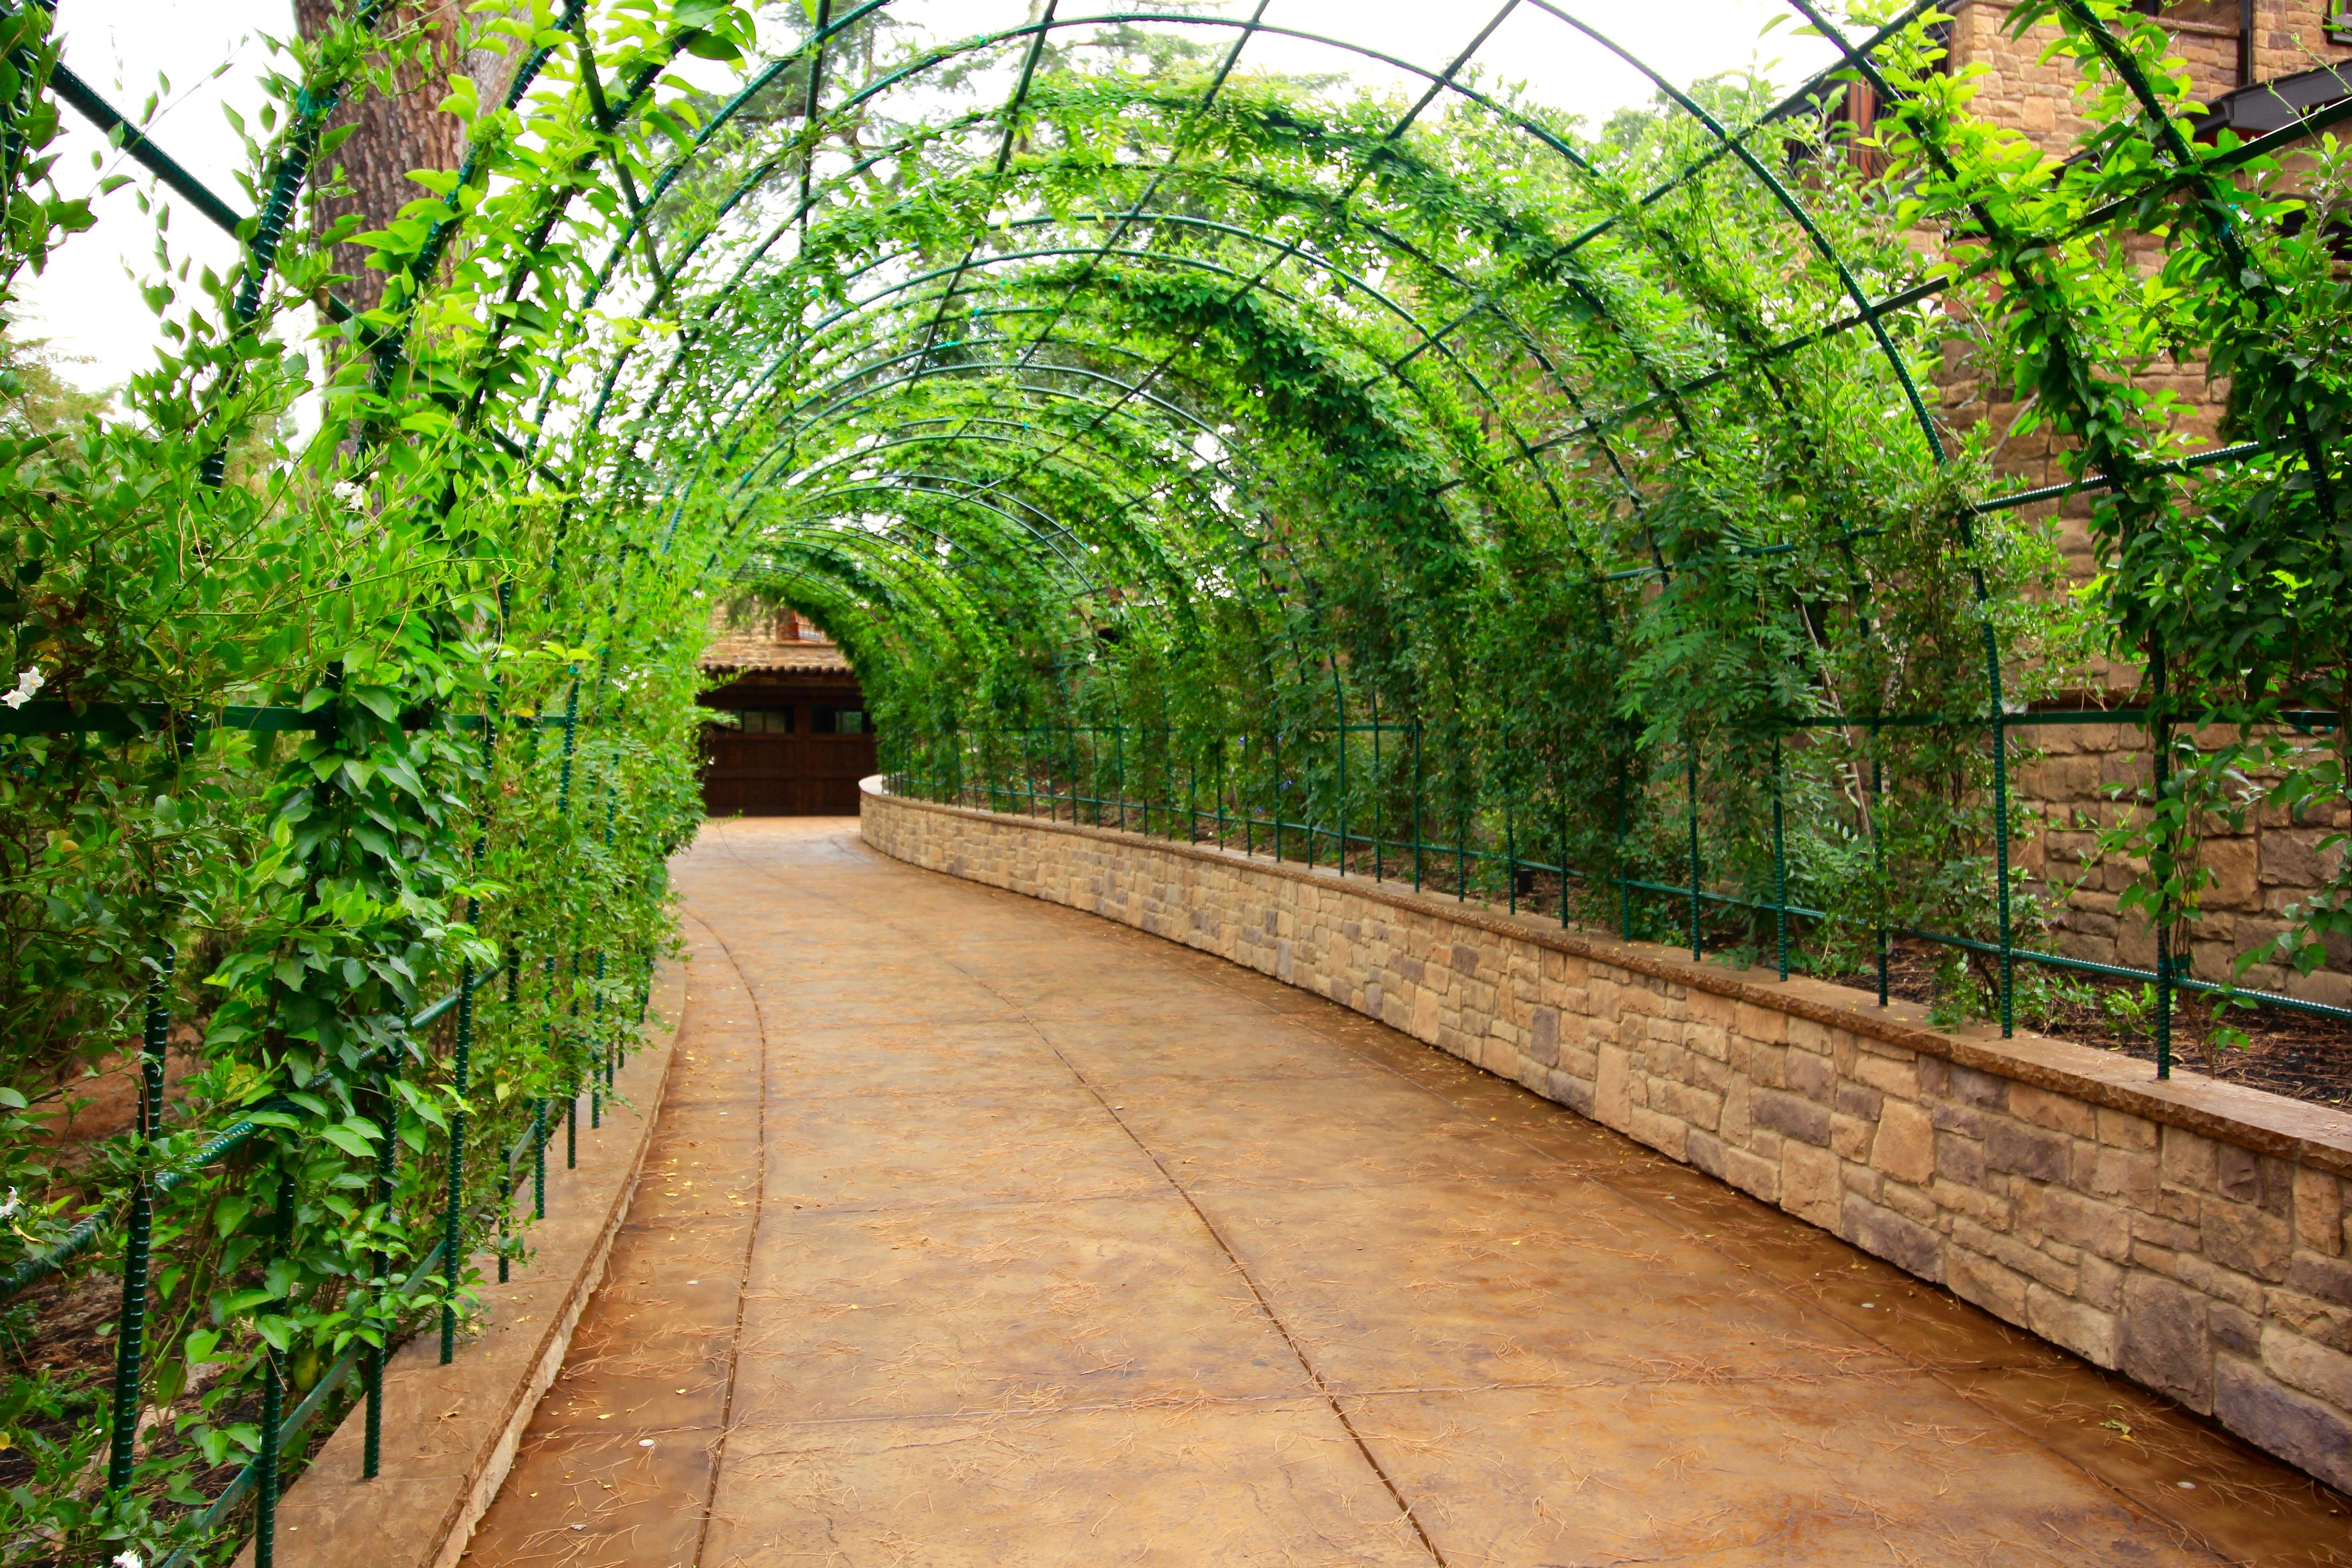 Living Tunnel Driveway Vines Growing Over Rebar Arches Secured Into Retaining Walls With Stone Fin Stamped Concrete Driveway Concrete Driveways Outdoor Design